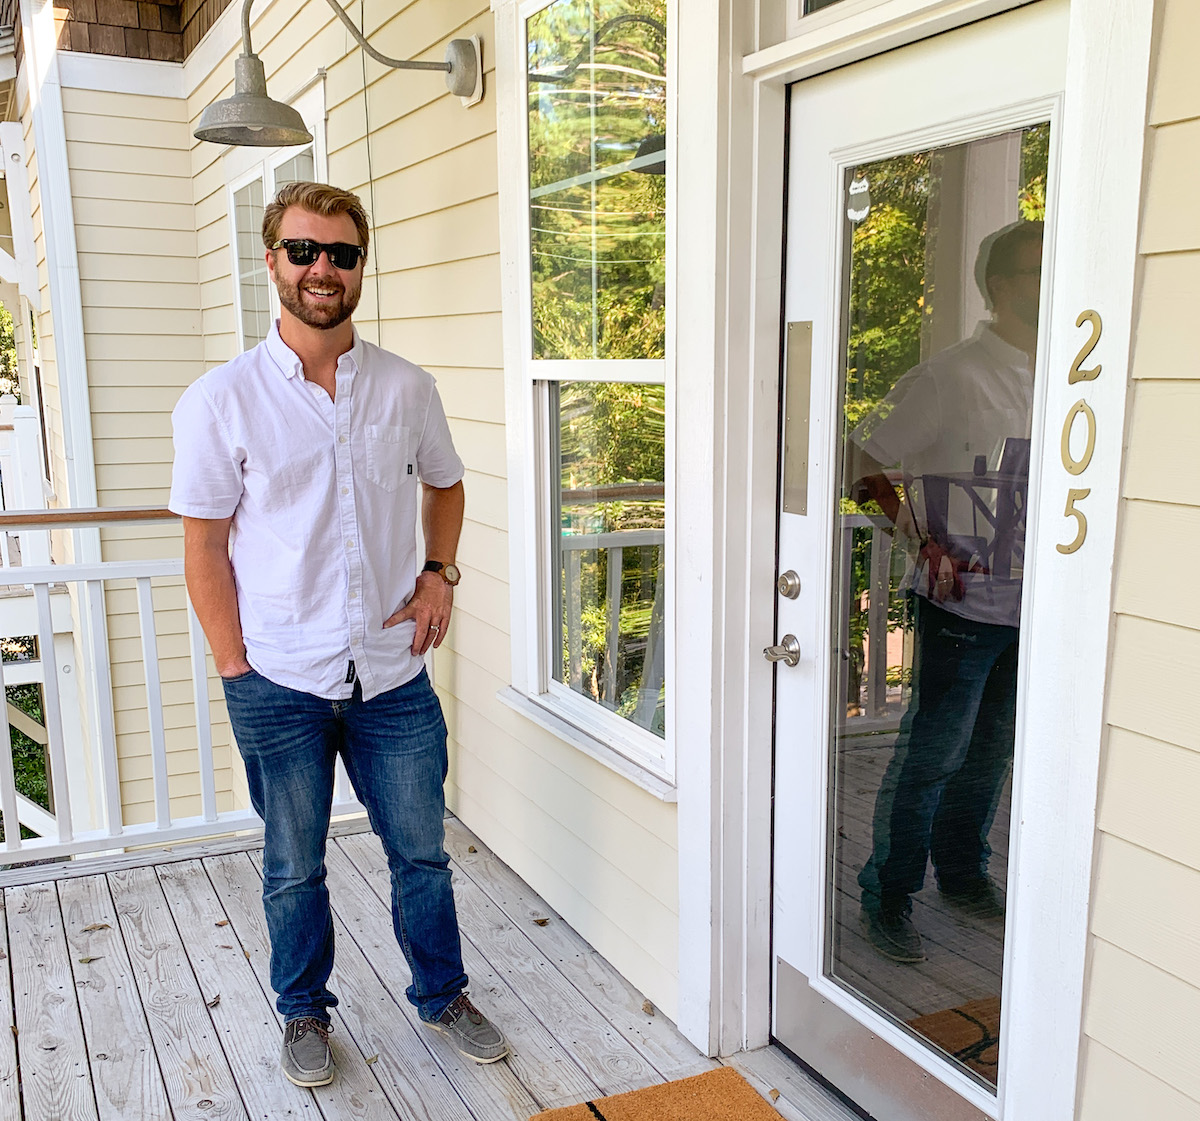 Wilmington Real Estate: Behind the Scenes with Salt + Stone